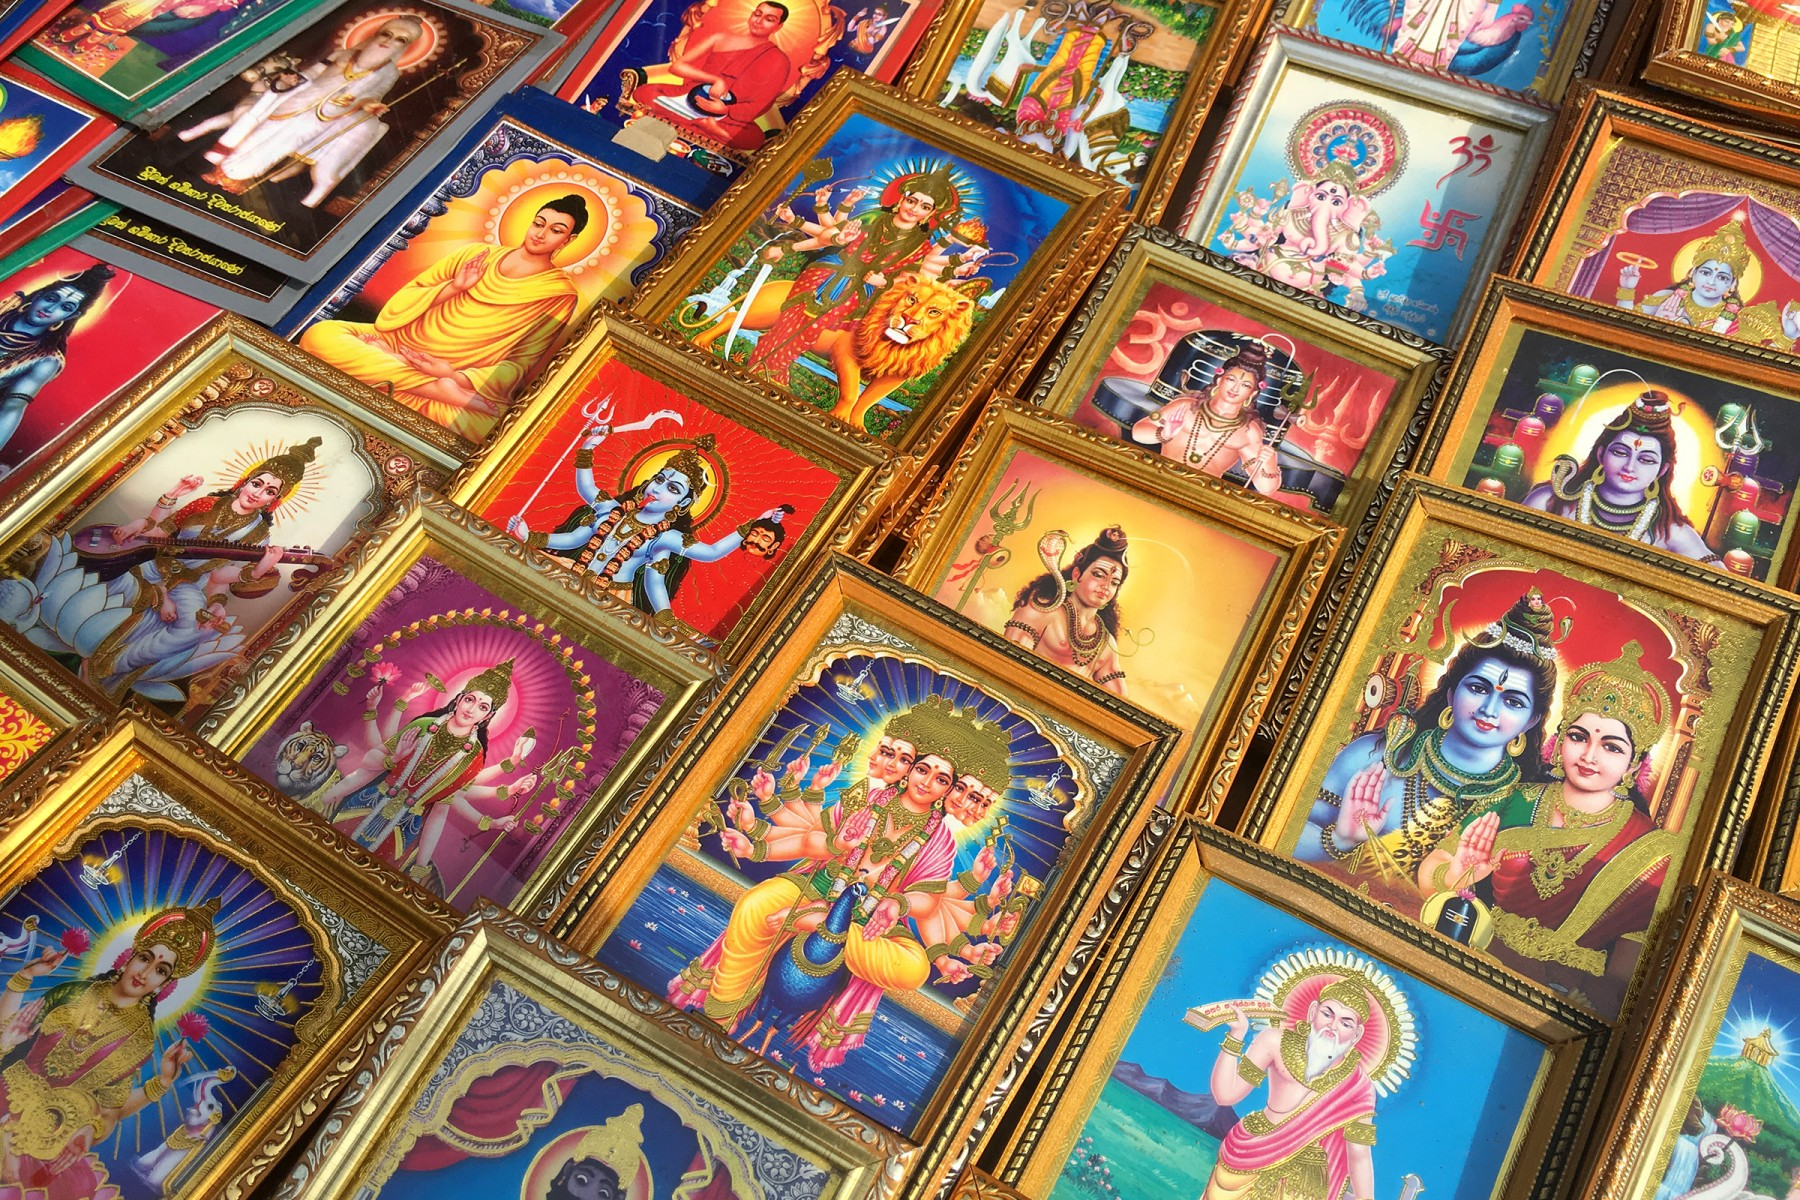 Framed icons of the Hindu deities at a market stall in Anuradhapura.